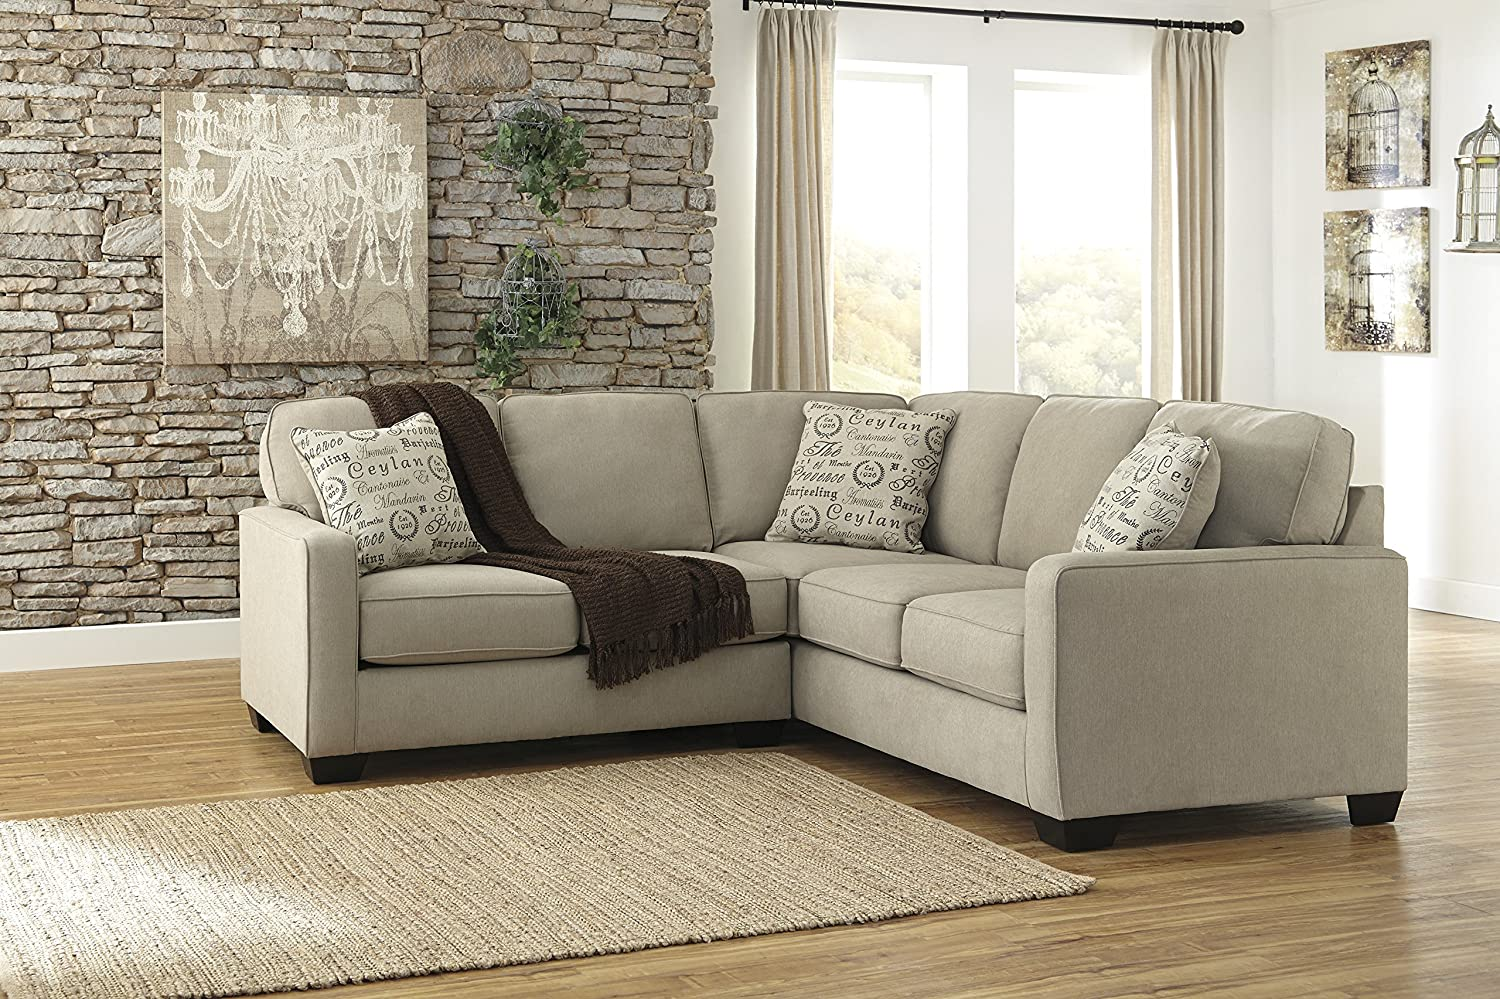 Attractive Amazon.com: Ashley Alenya 16600 55 67 2PC Sectional Sofa With Left Arm  Facing Loveseat Right Arm Facing Sofa Pillows With Print Pattern And Track  Arms In: ... Idea